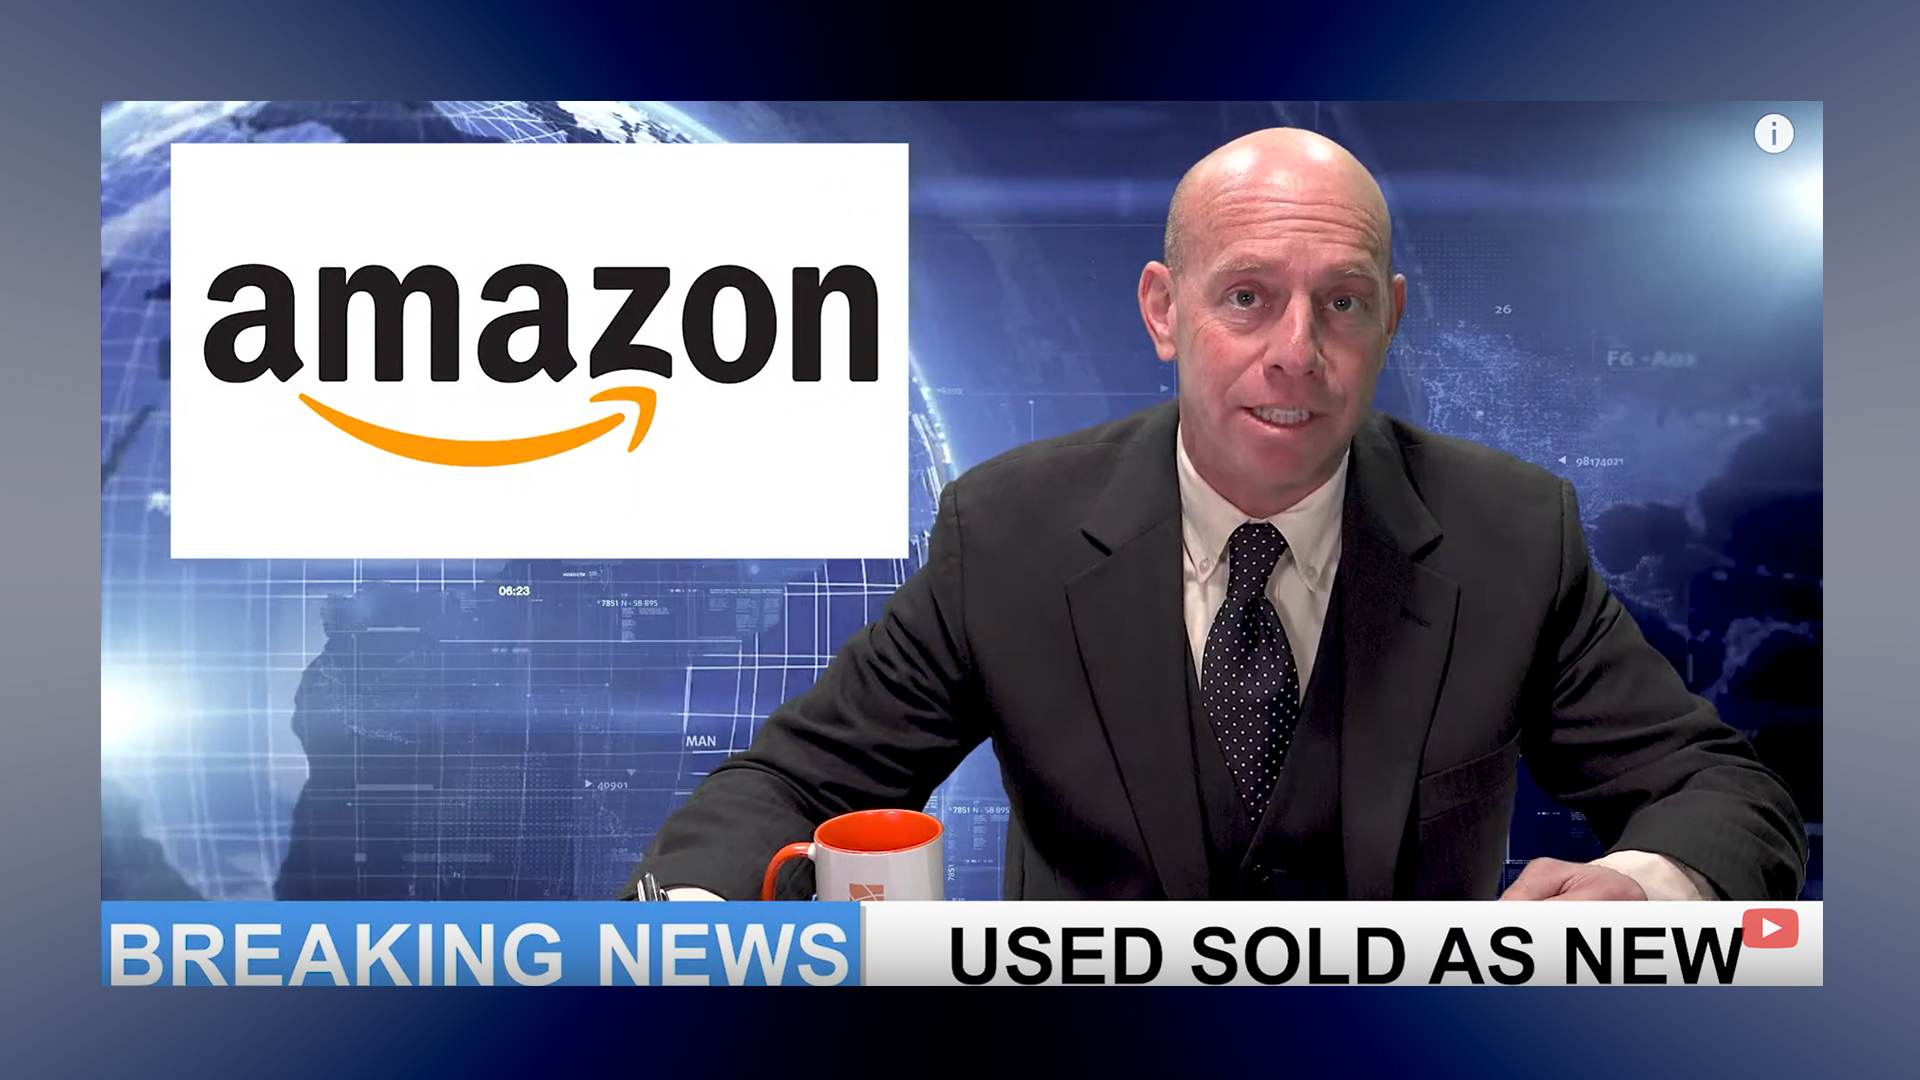 Amazon Sellers News 1-22-20 Used Sold As New Issues, Late Shipments, VORYS Letters